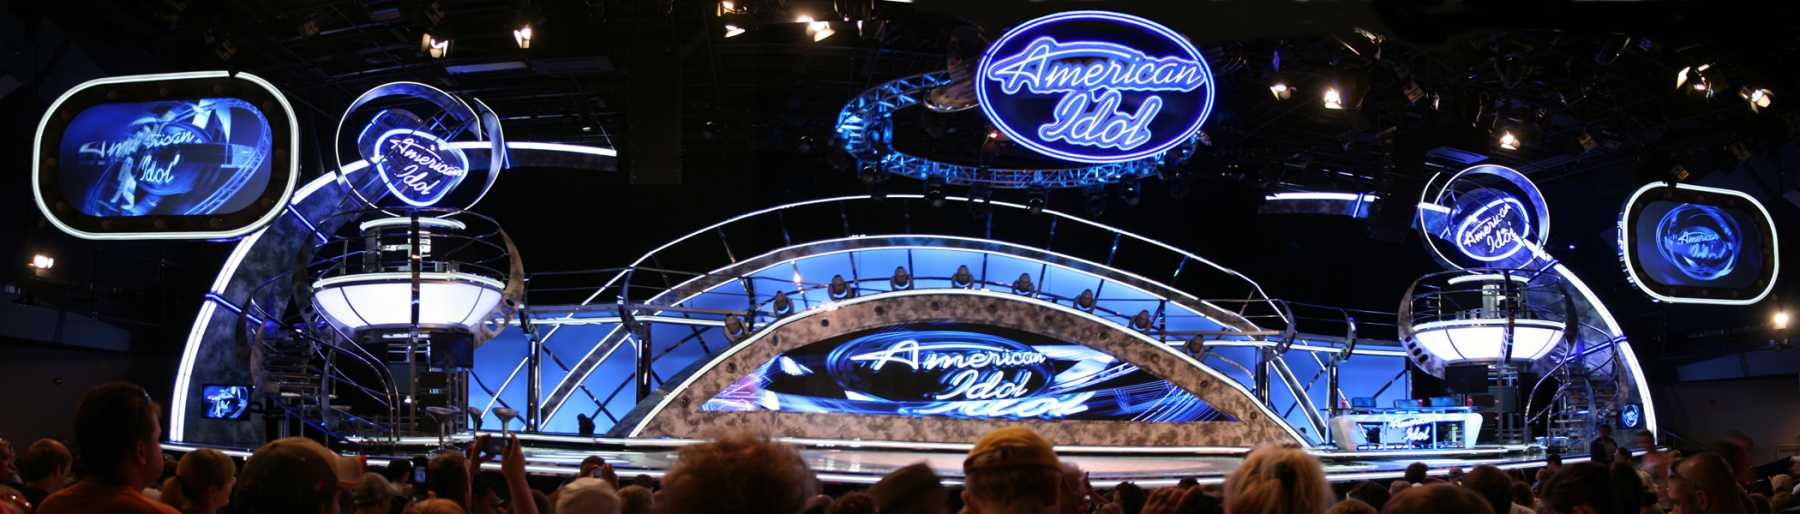 The Curtain Will Fall On The 'American Idol Experience' In 2015